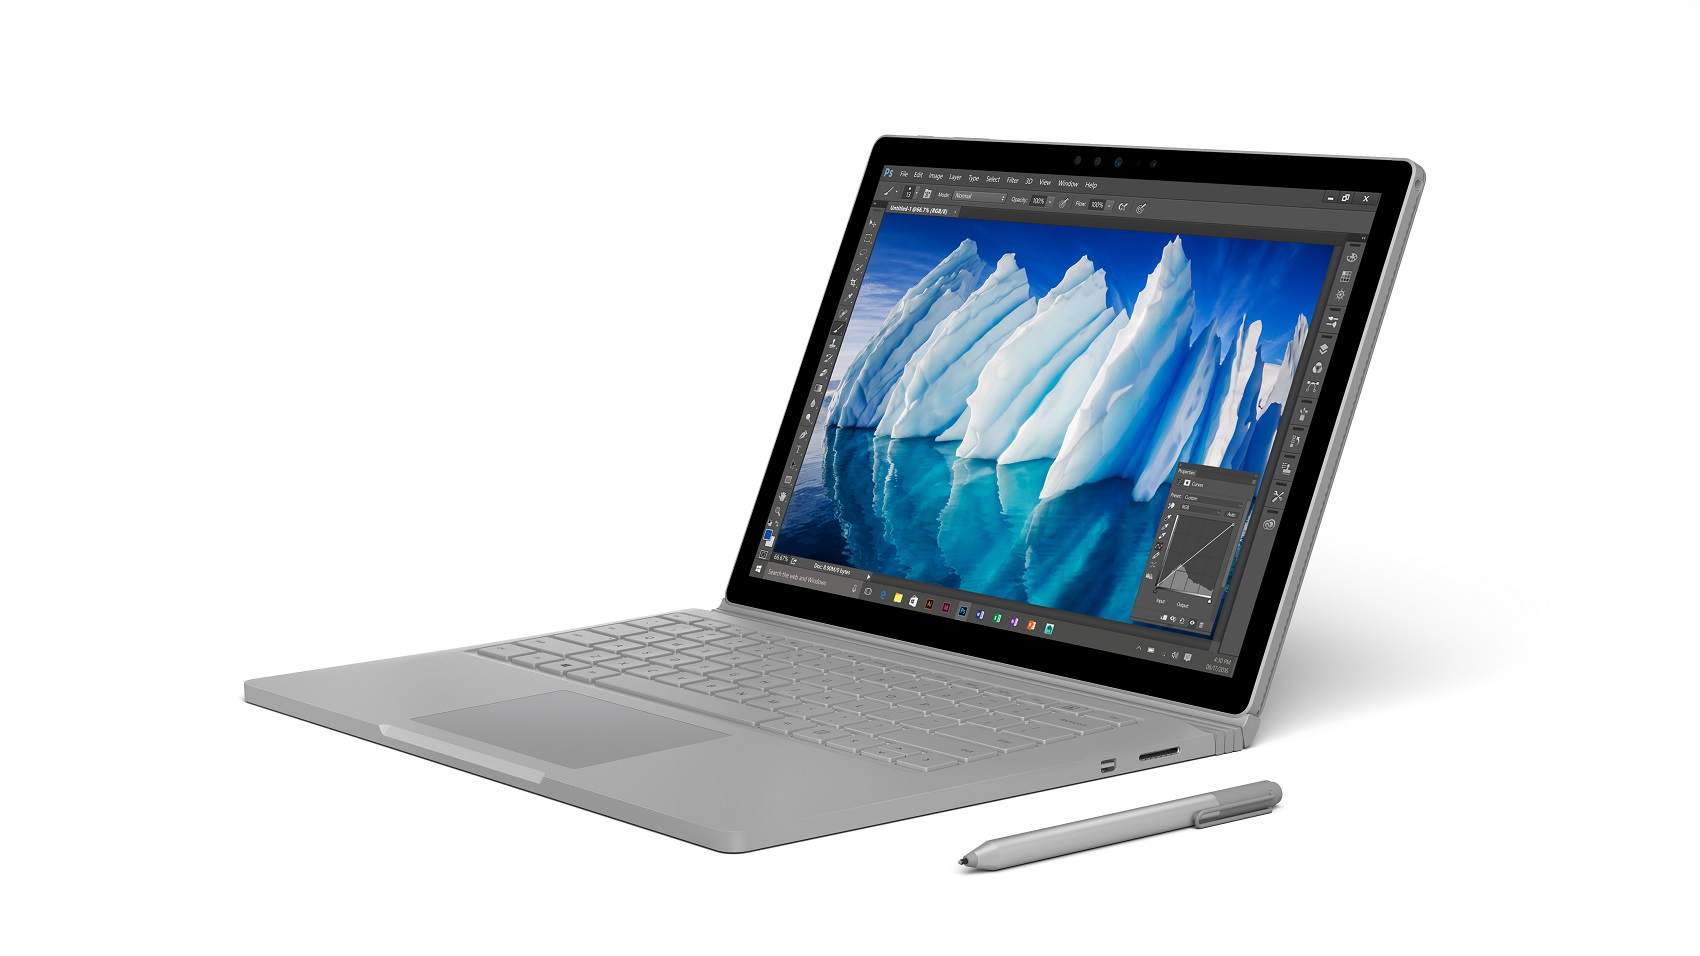 The most powerful Surface Book yet